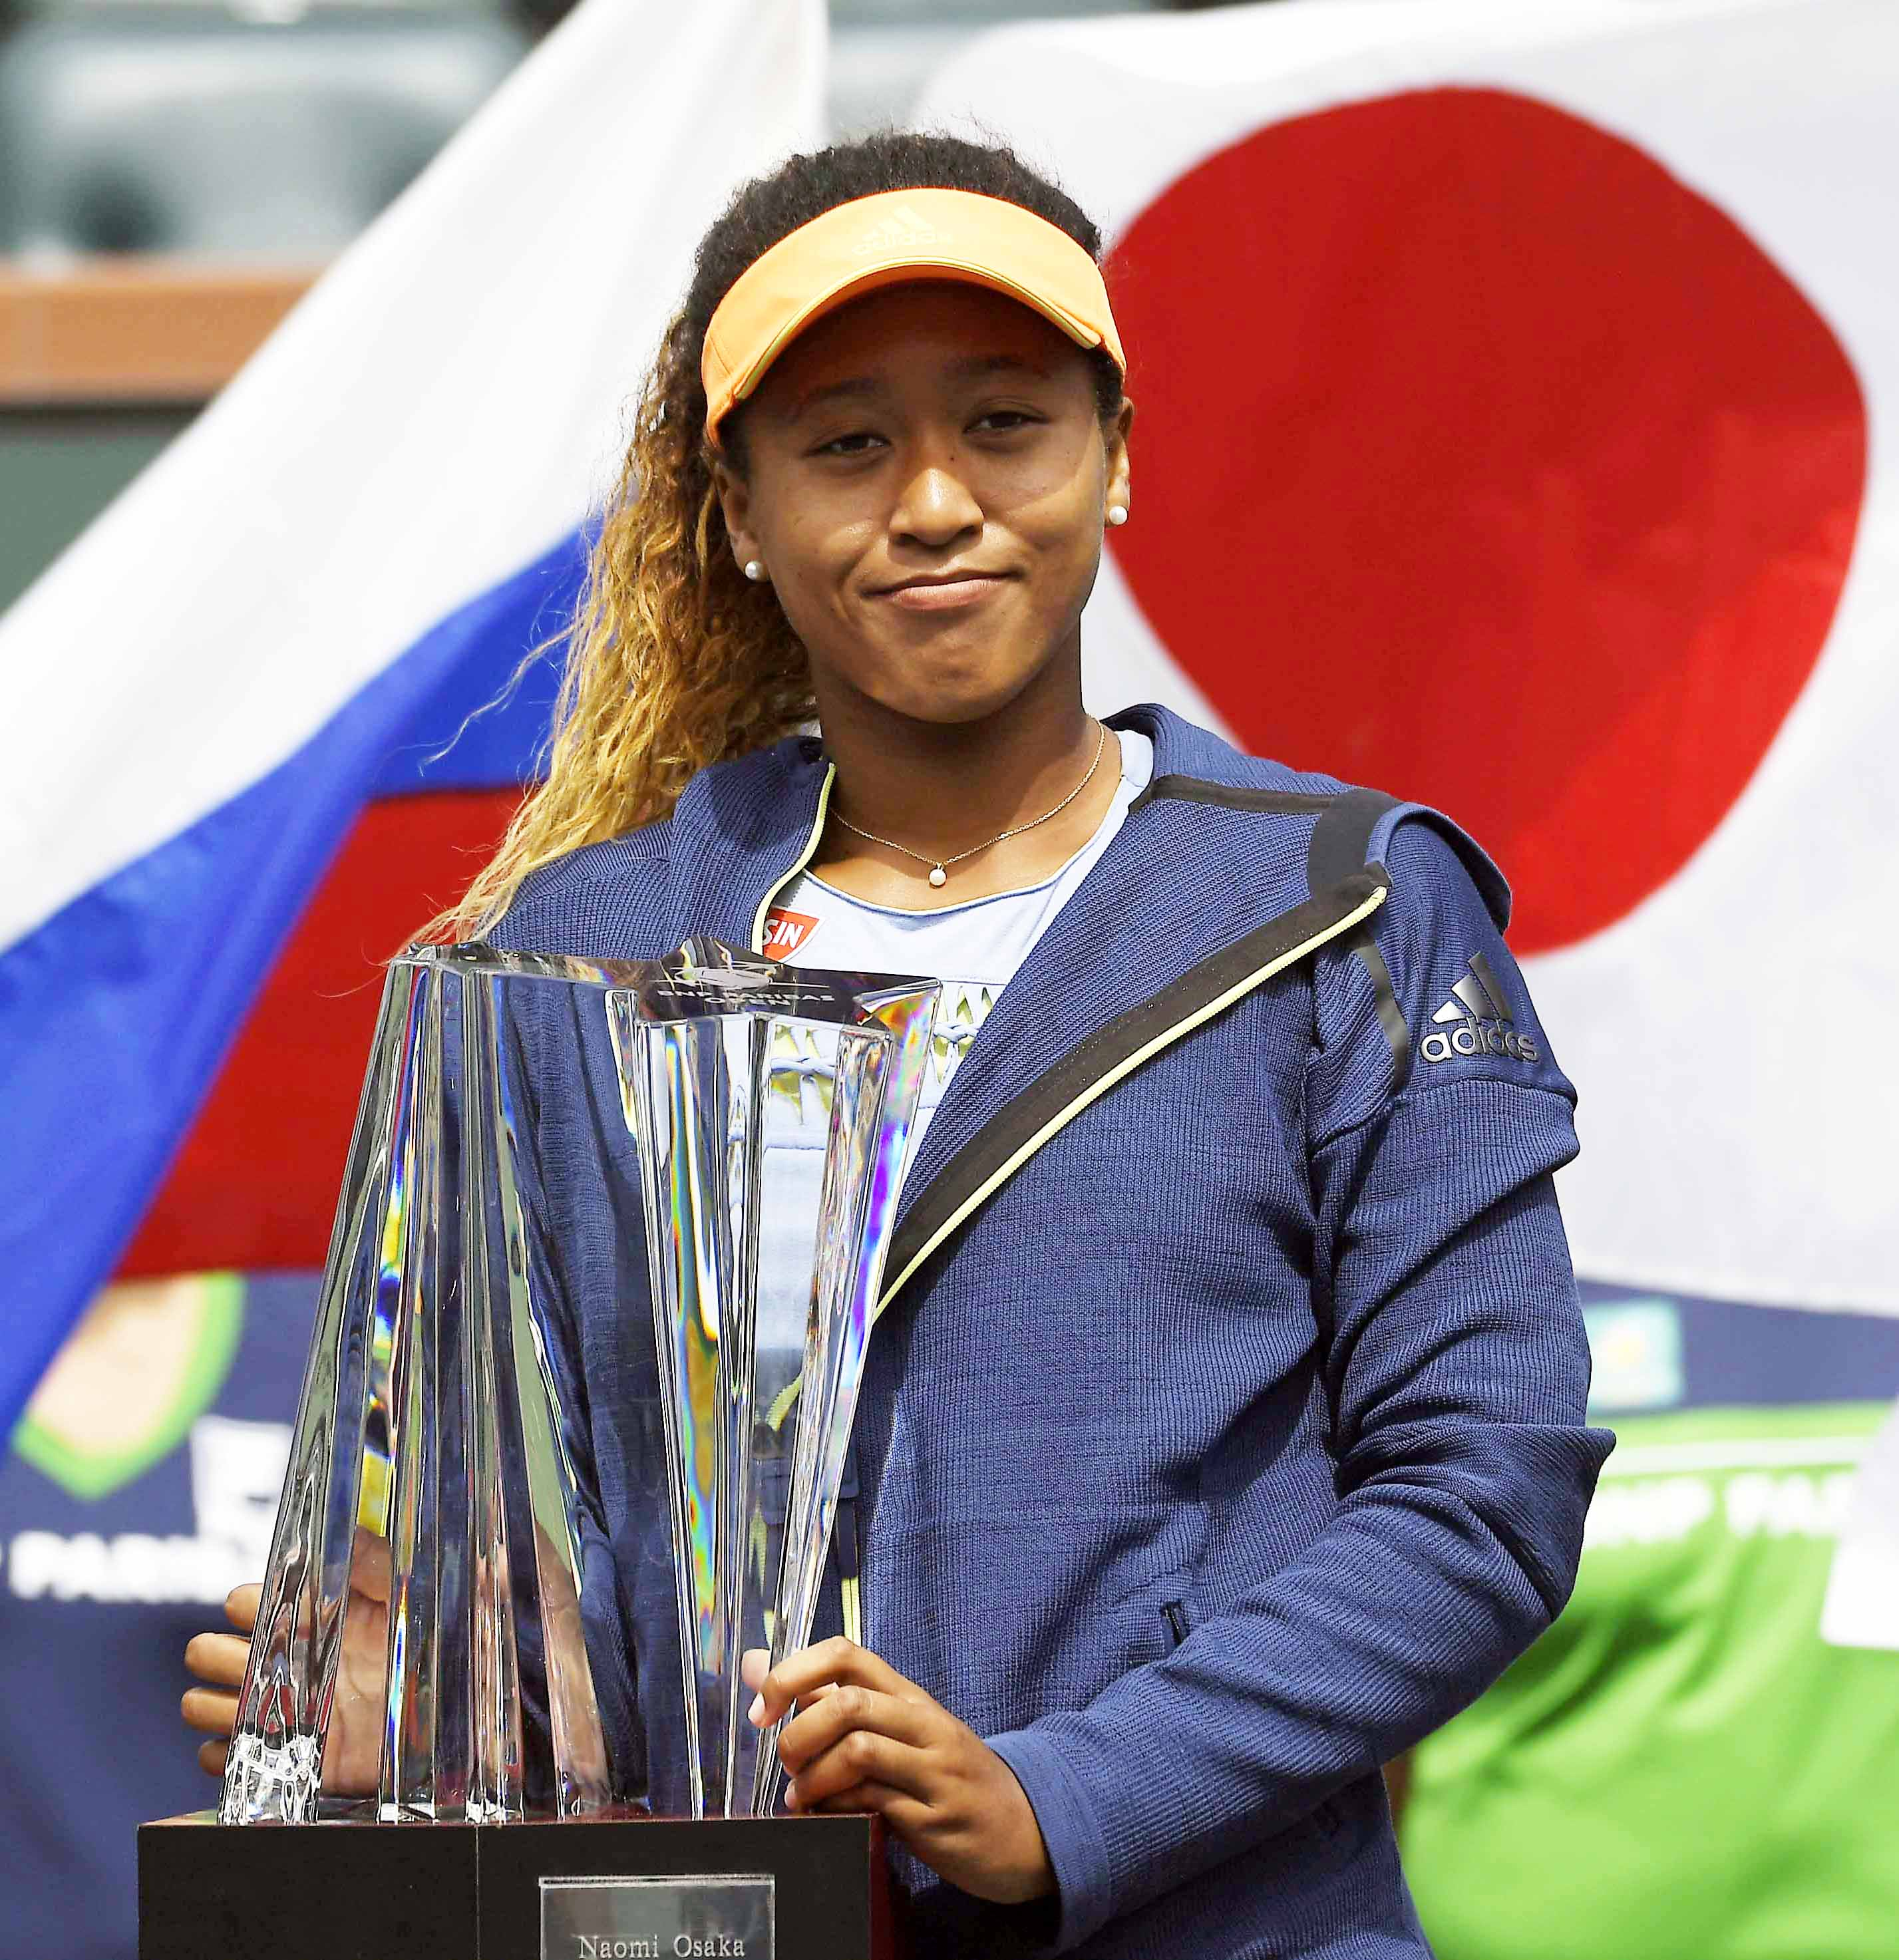 Naomi Osaka of Japan poses with her trophy after defeating Daria Kasatkina of Russia in the women's final at the BNP Paribas Open tennis tournament on Sunday in Indian Wells, Calif. Osaka won 6-3, 6-2.